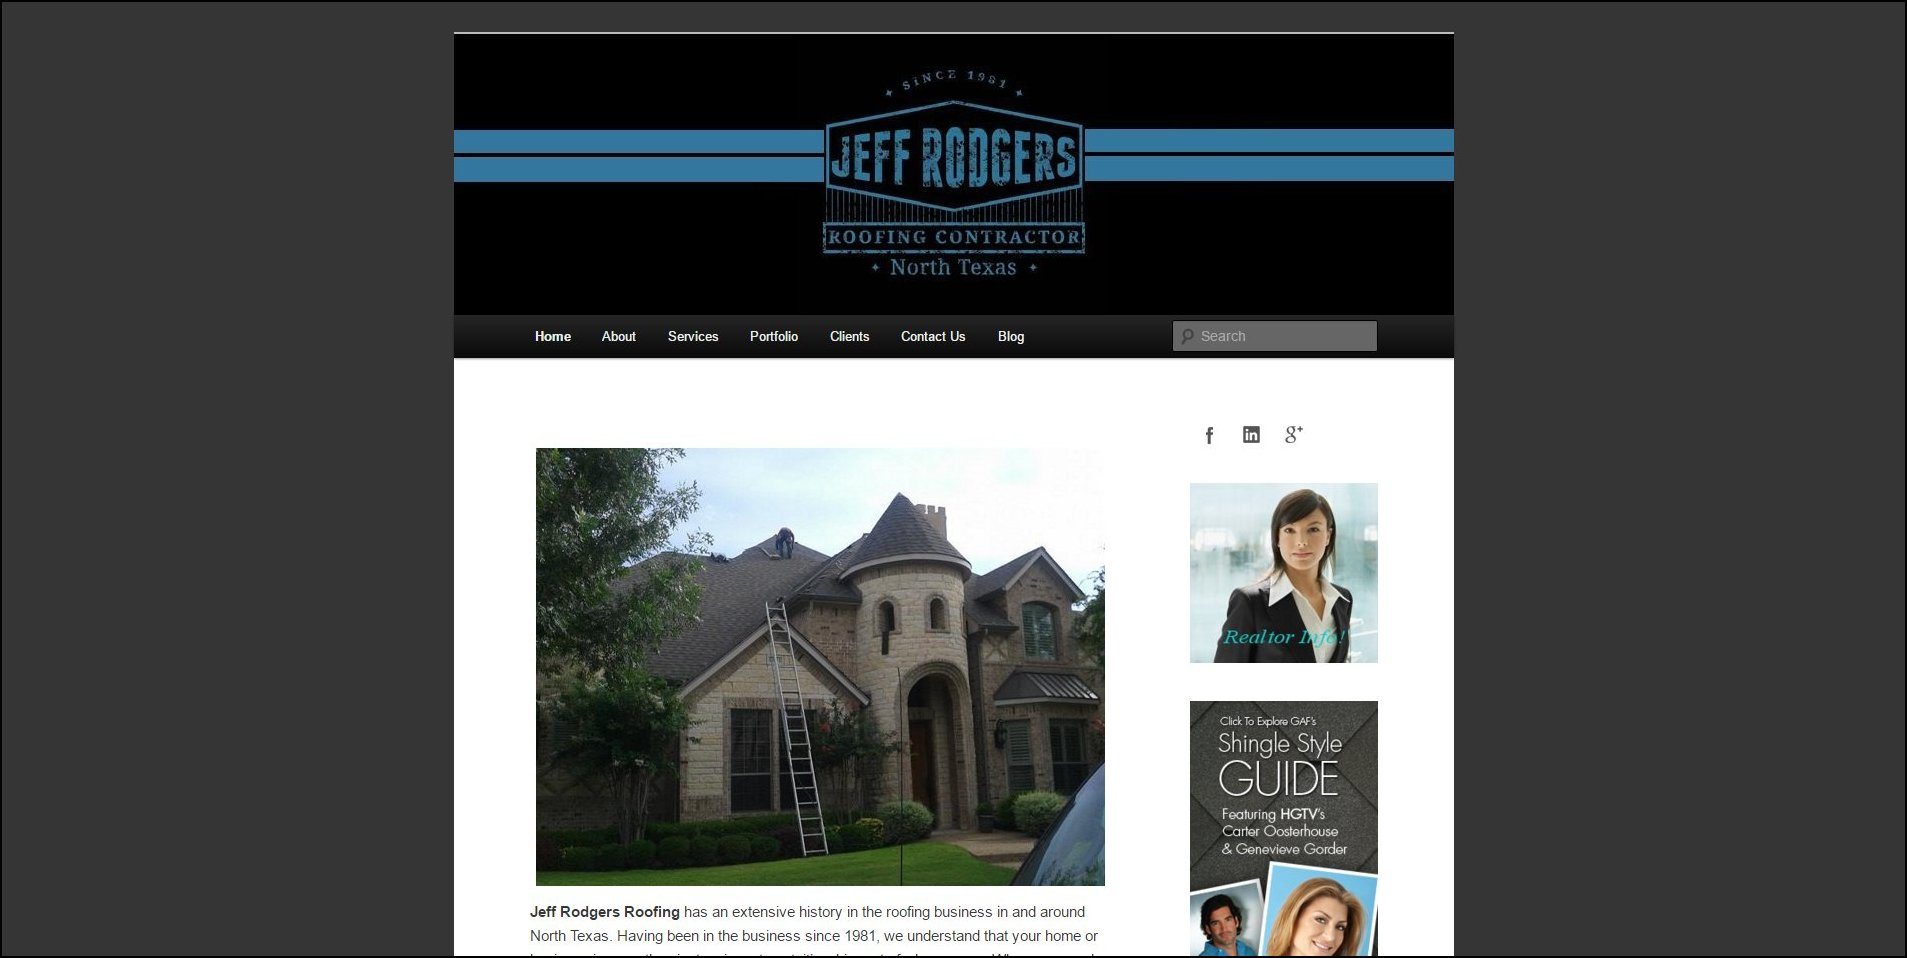 Jeff Rodgers Roofing